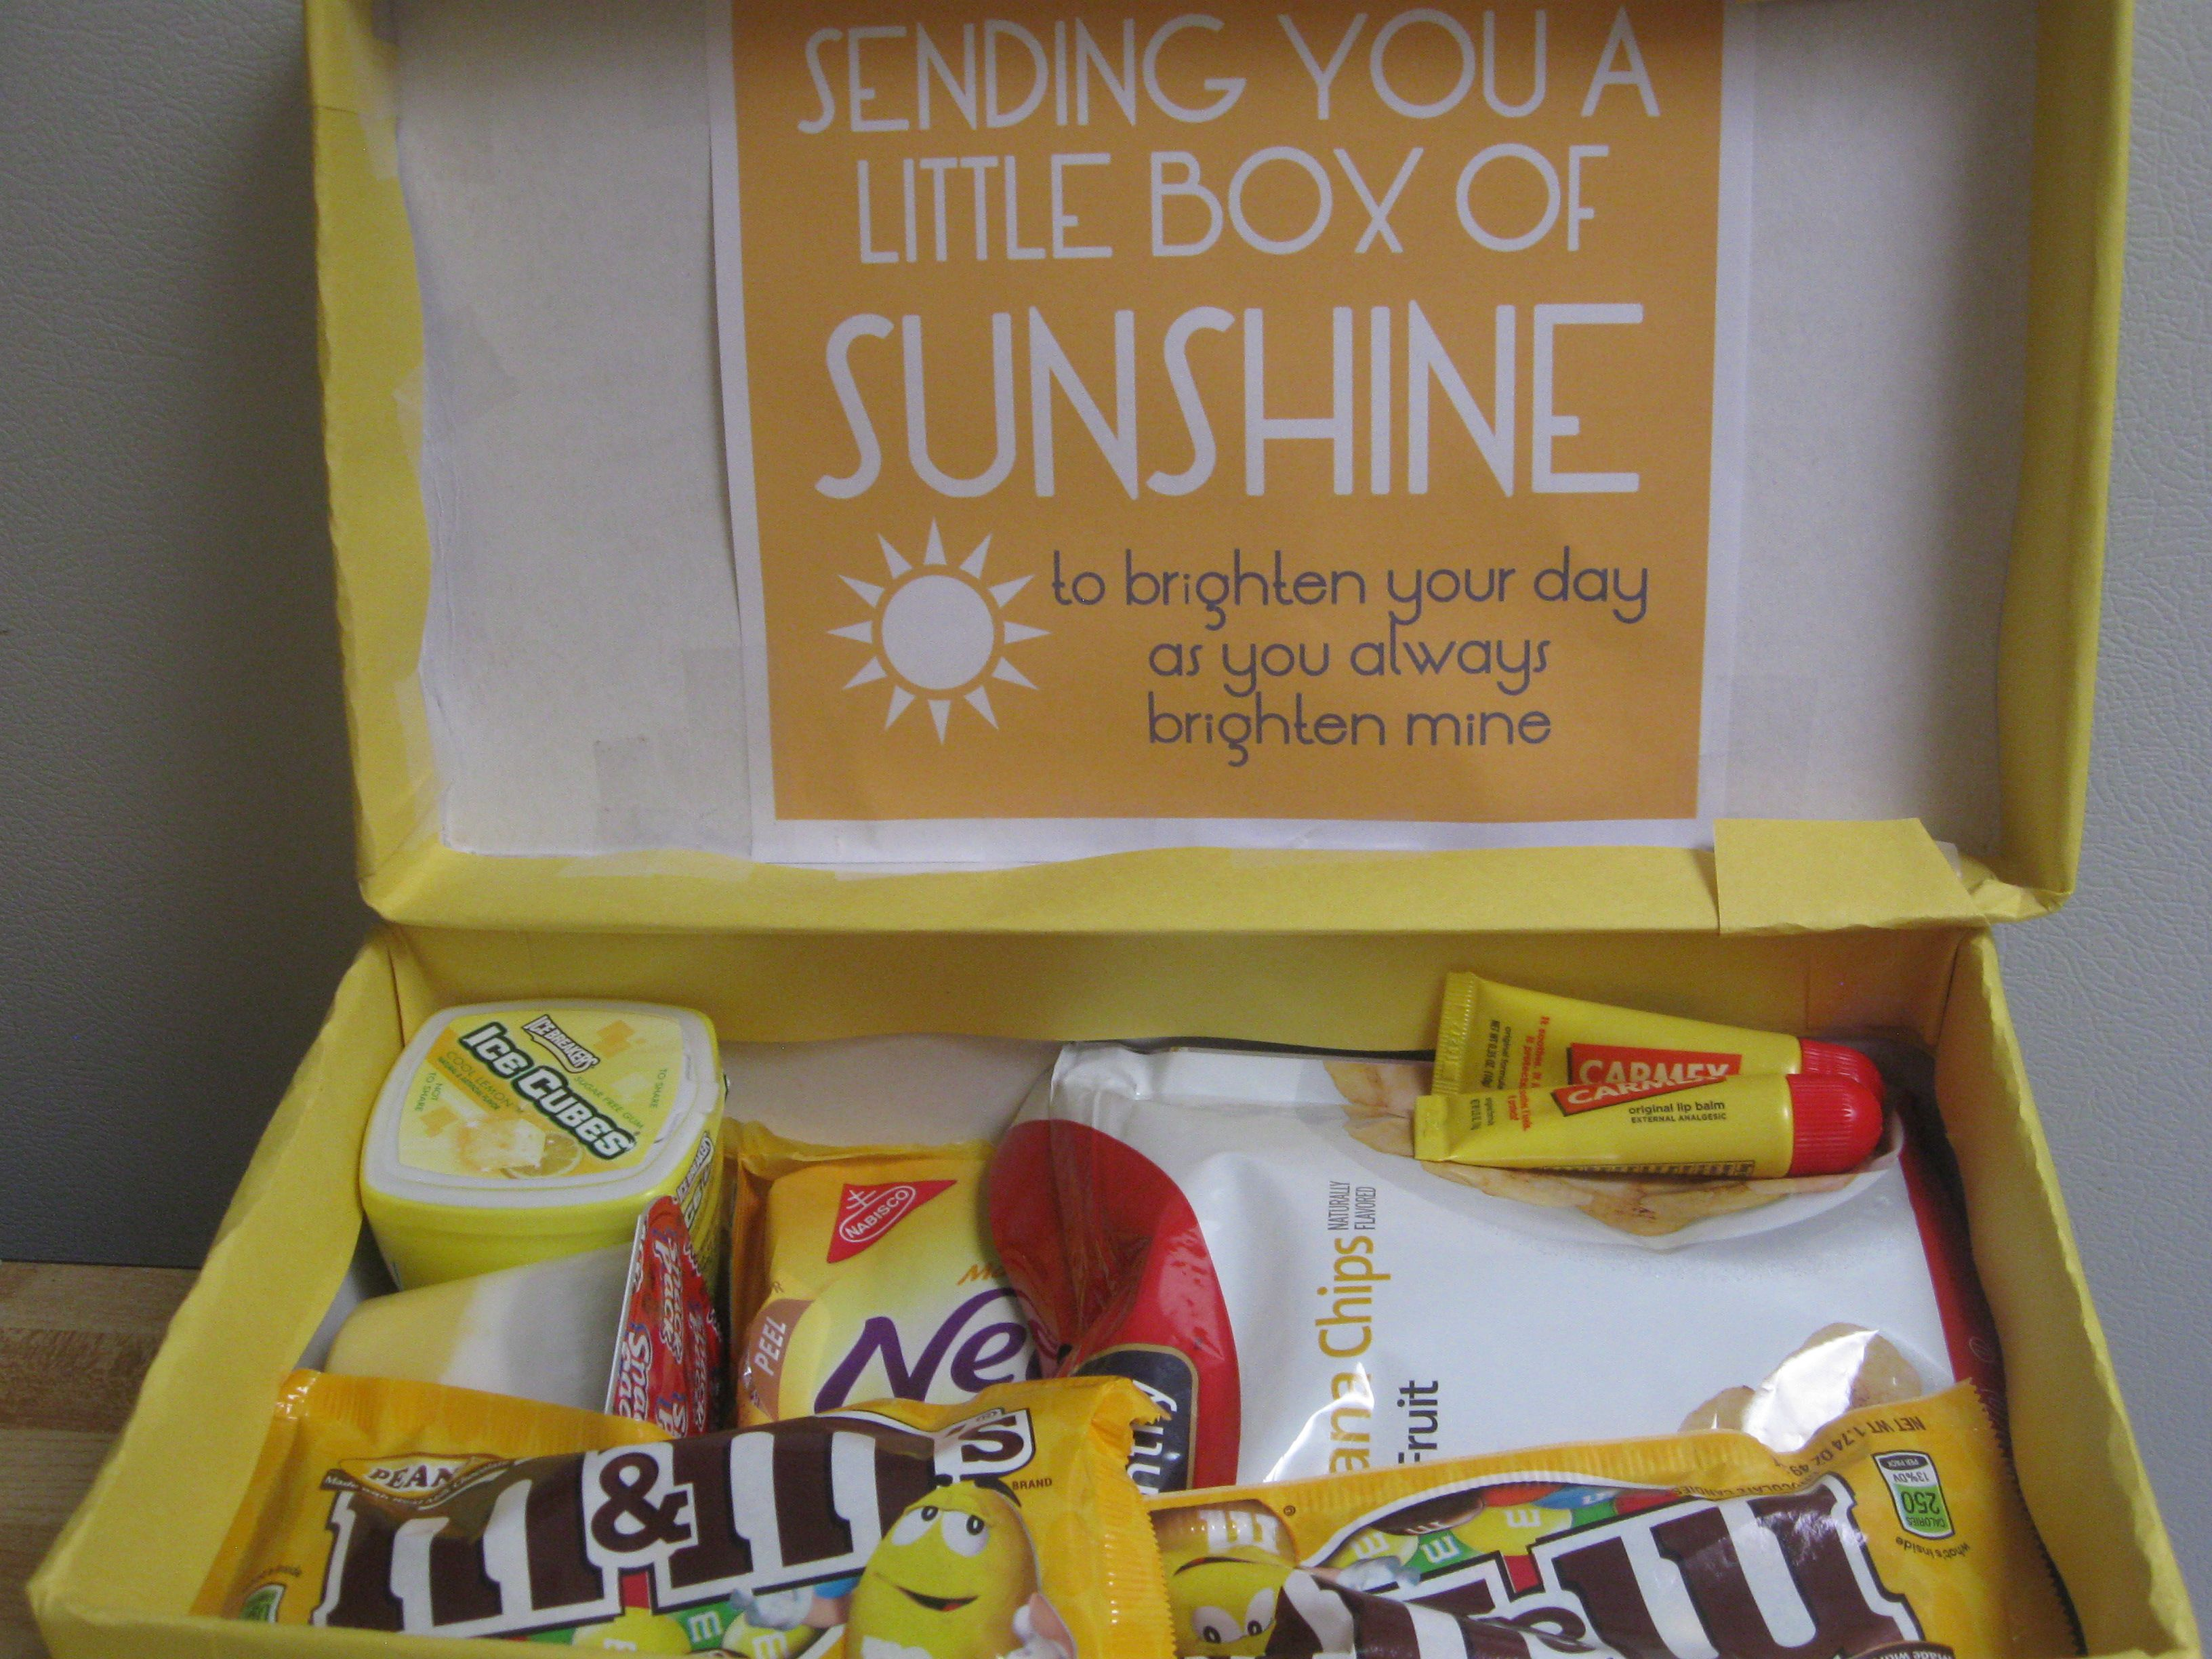 Sending you a little box of sunshine to brighten your day as you always brighten mine. (Came out real cute!)